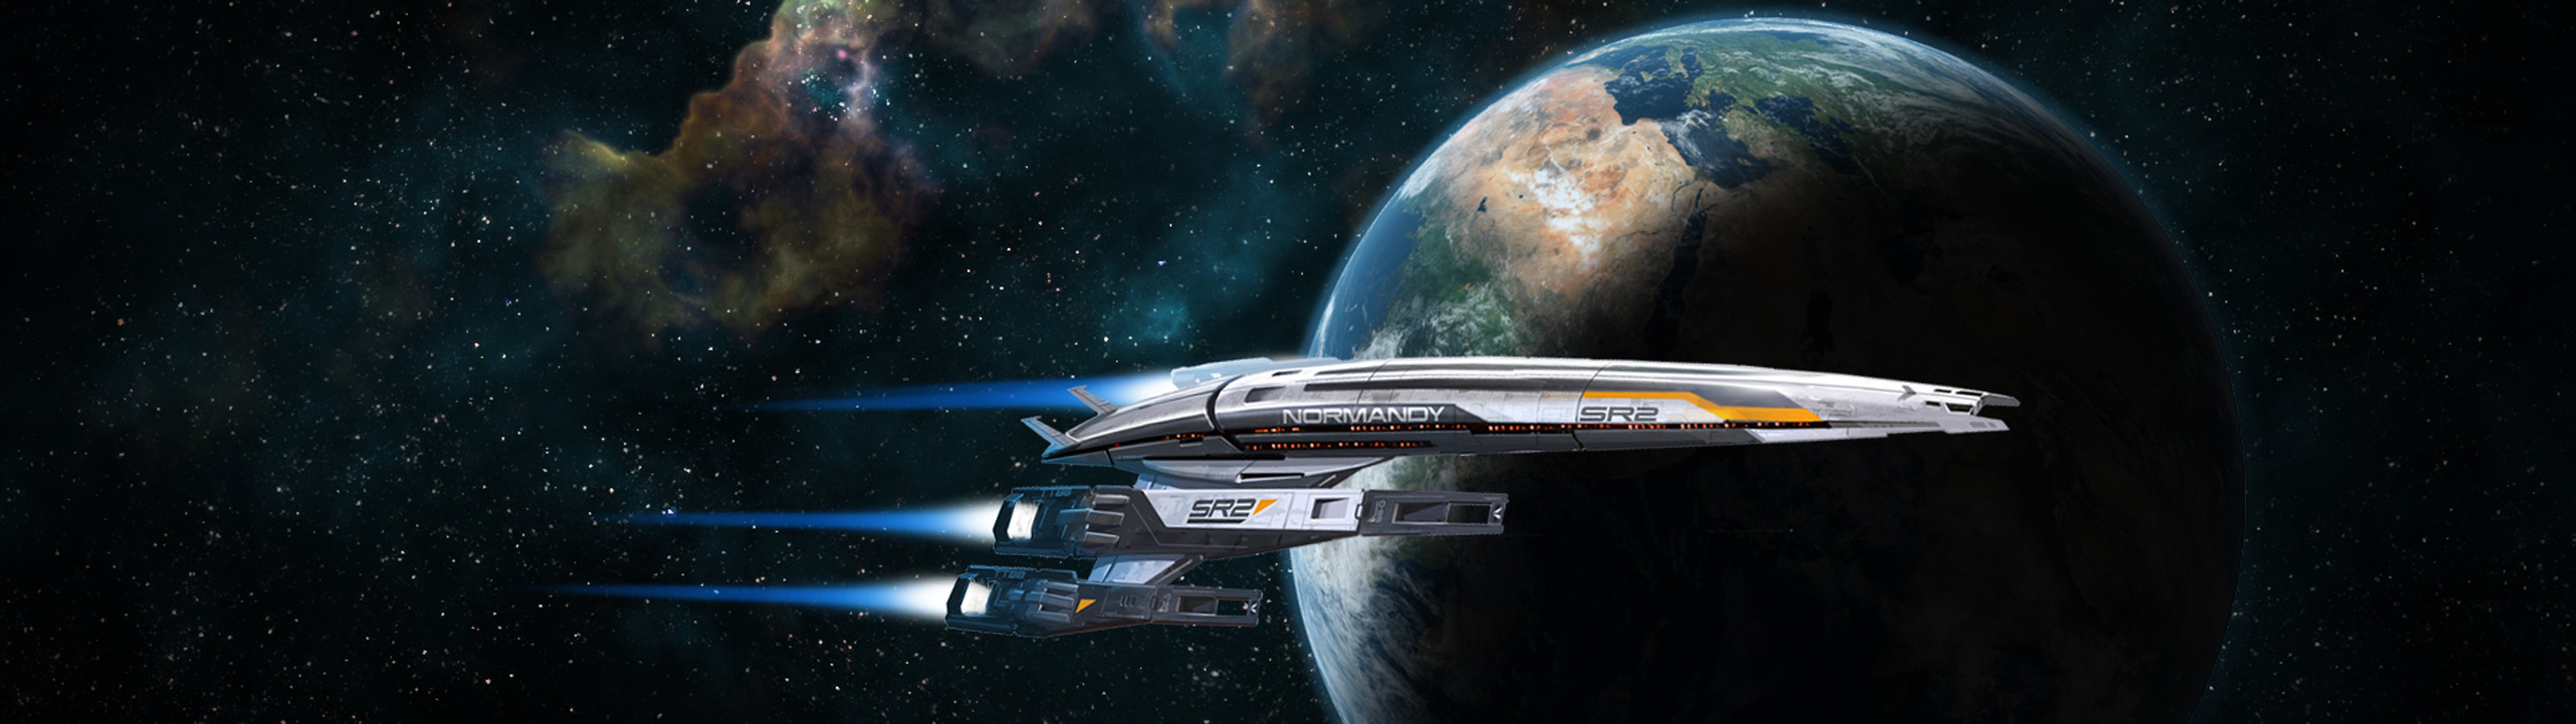 High resolution Spaceship dual screen 3200x900 background ID:184347 for PC